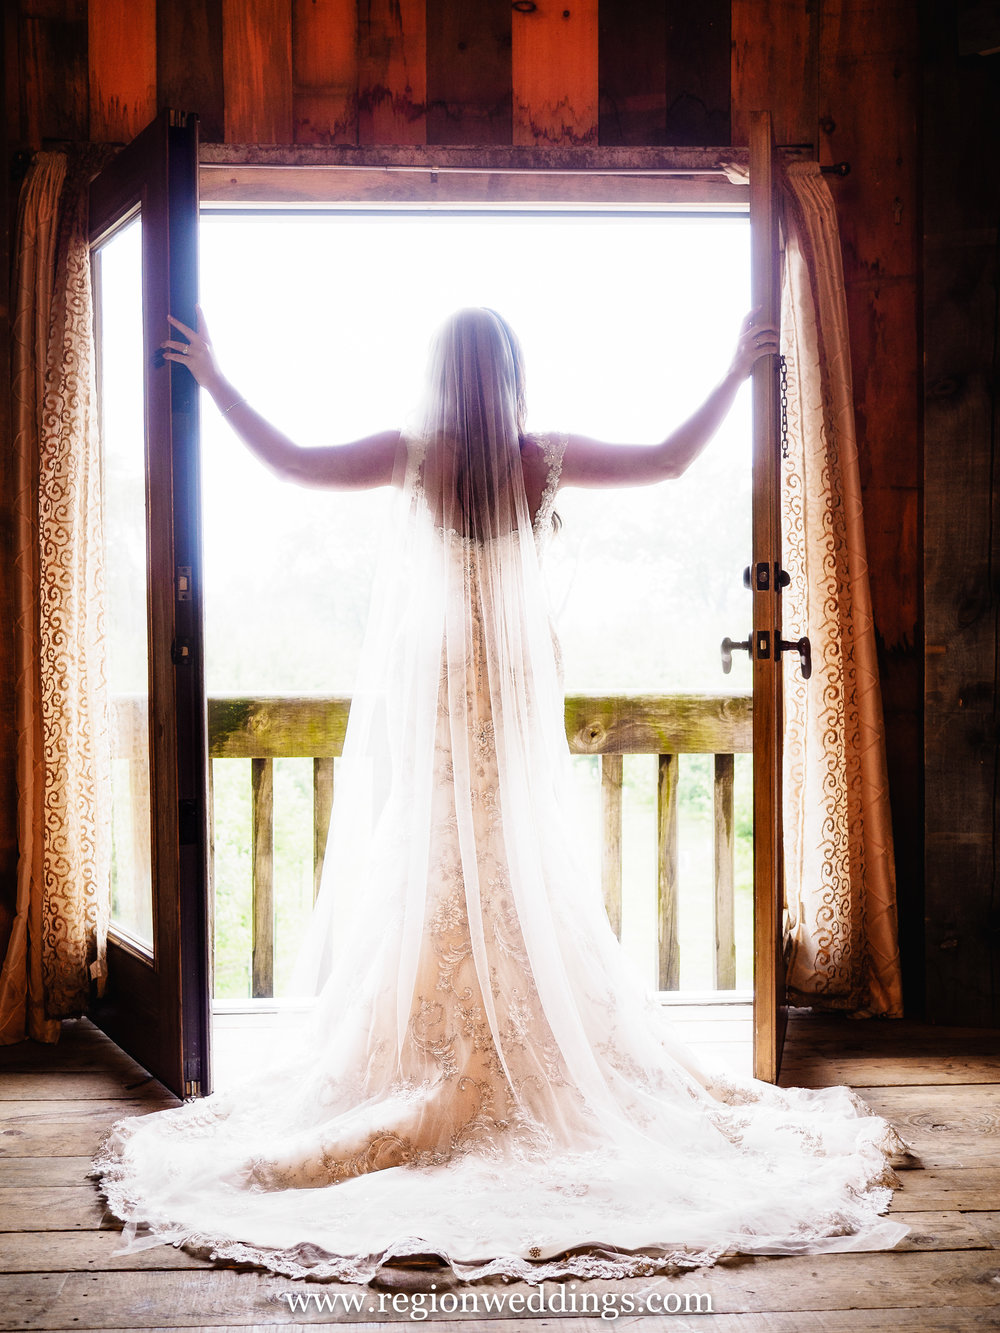 Bride opens the doors on the balcony of the bridal suite at County Line Orchard in Hobart, Indiana.